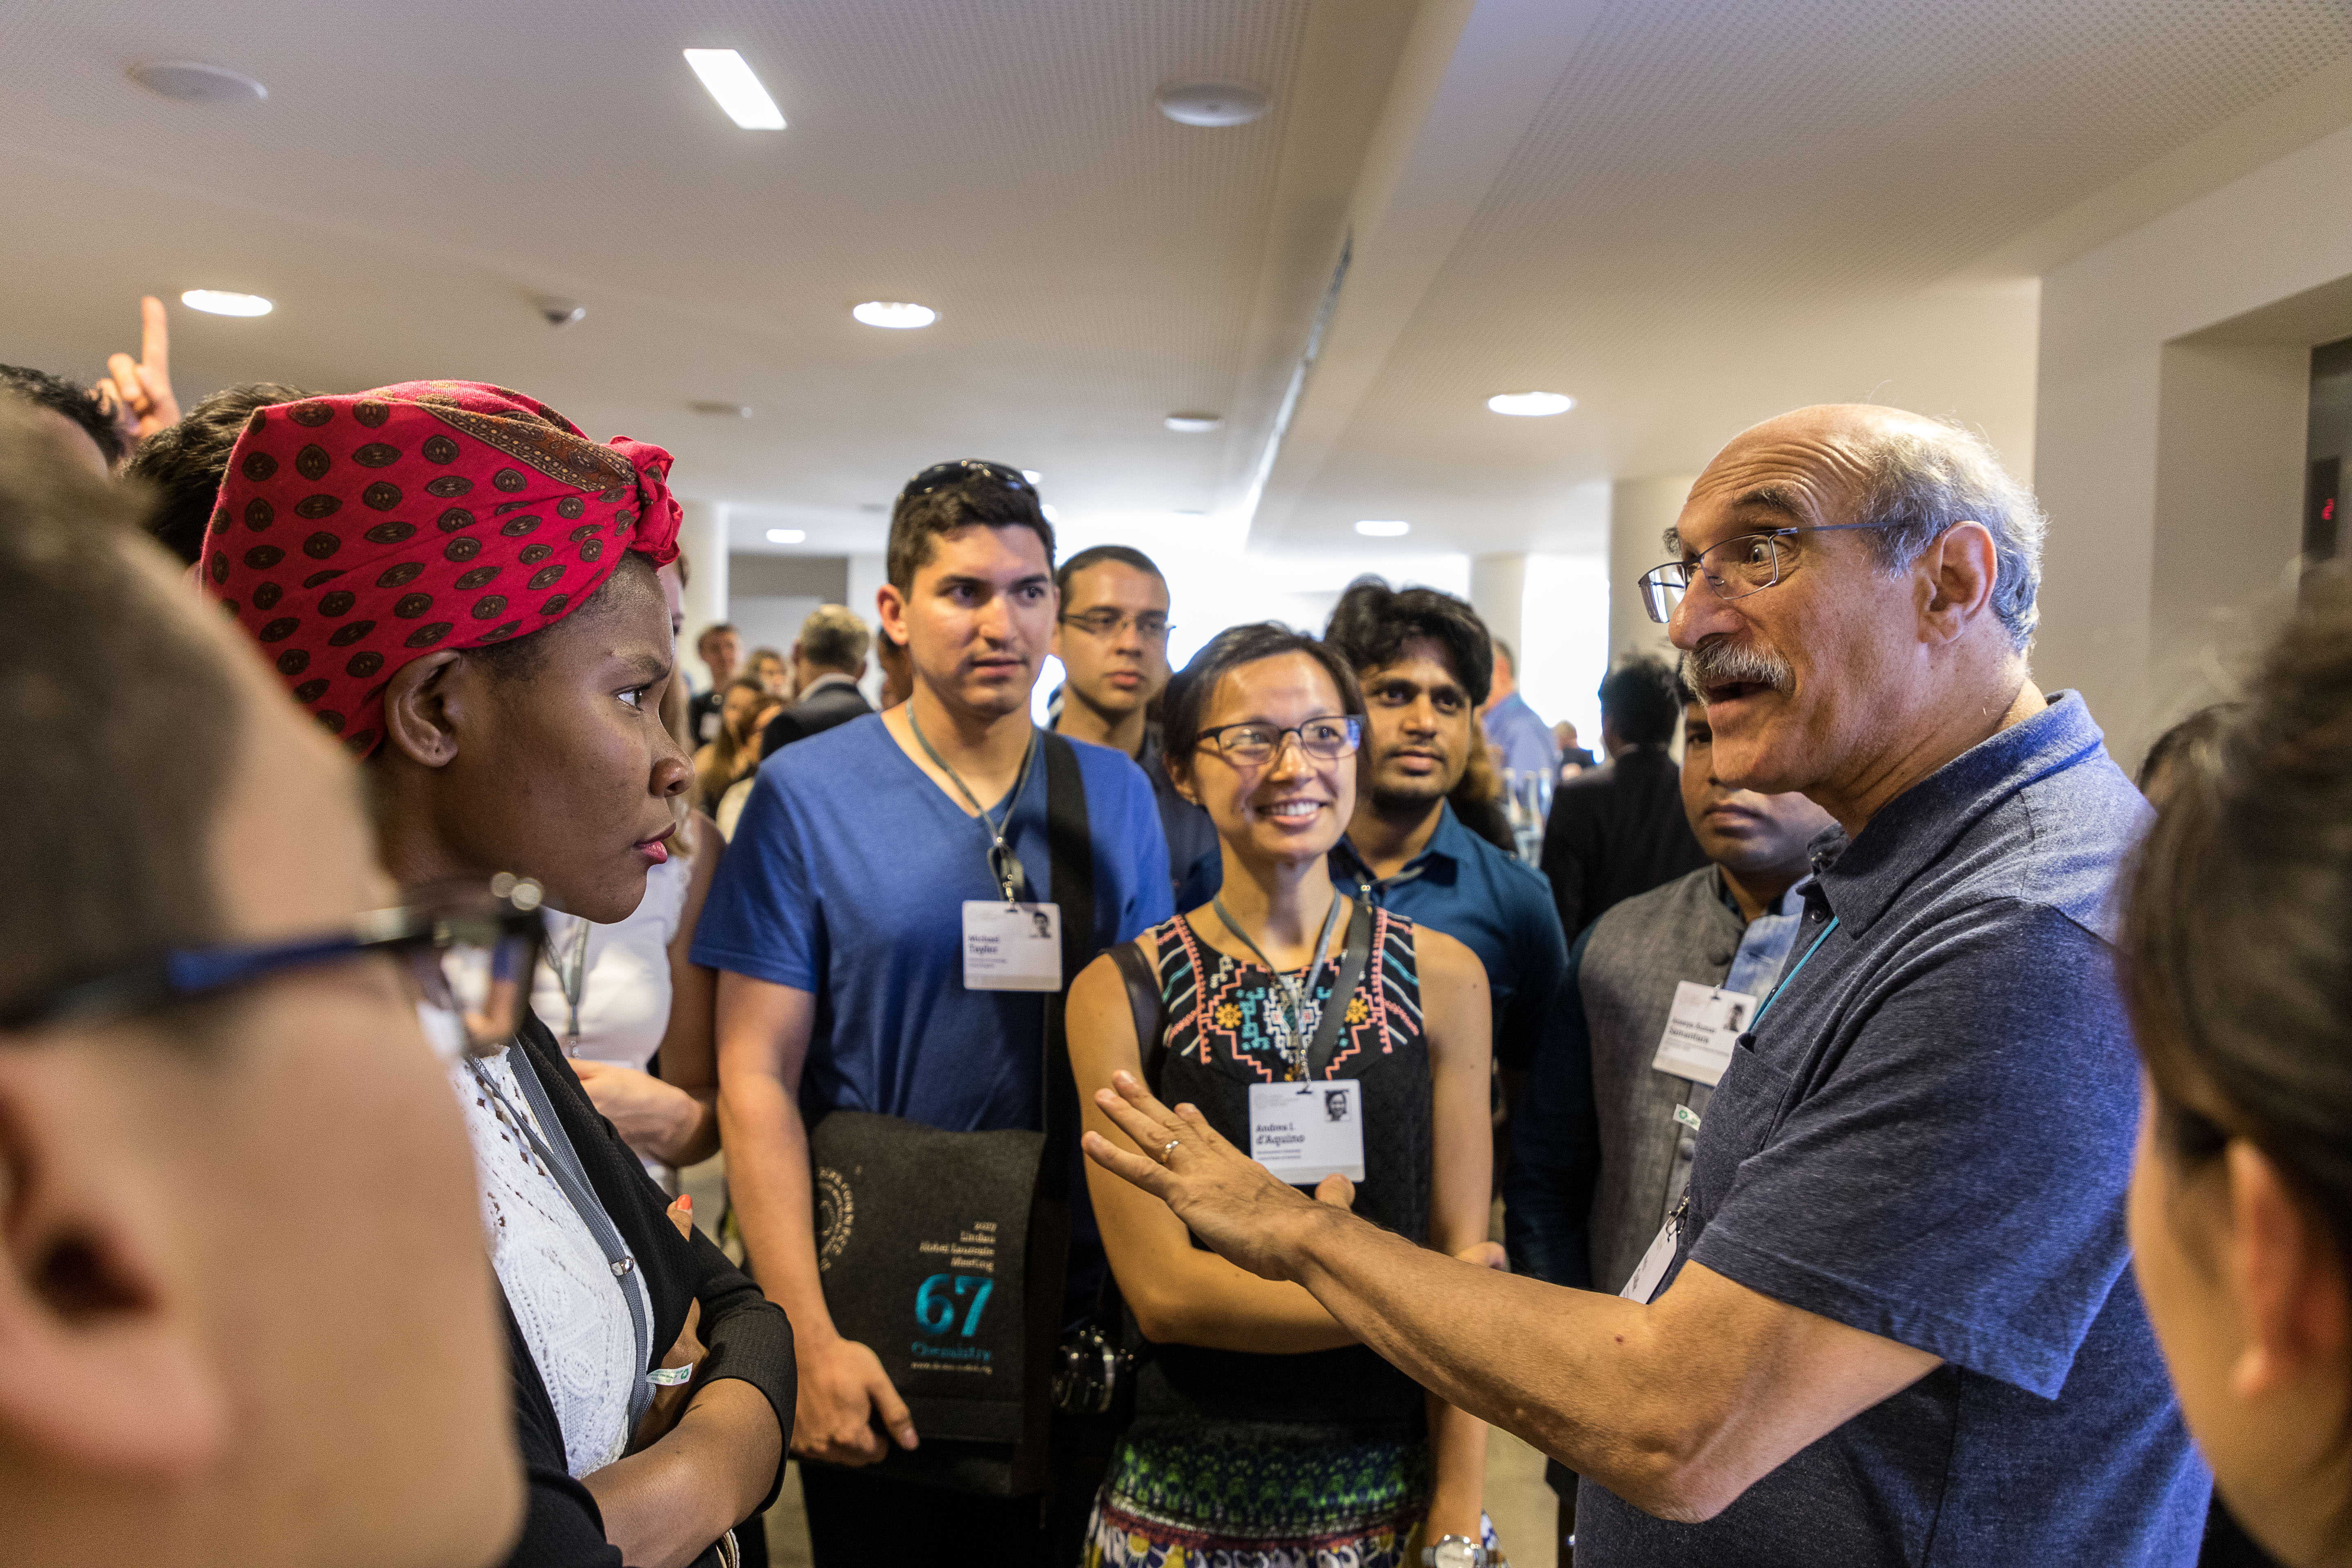 67th Lindau Nobel Laureate Meeting Chemistry, 25.06.2017 - 30.06.2017, Lindau, Germany, Picture/Credit: Christian Flemming/Lindau Nobel Laureate Meetings,  Young Scientists in talk with Martin Chalfie